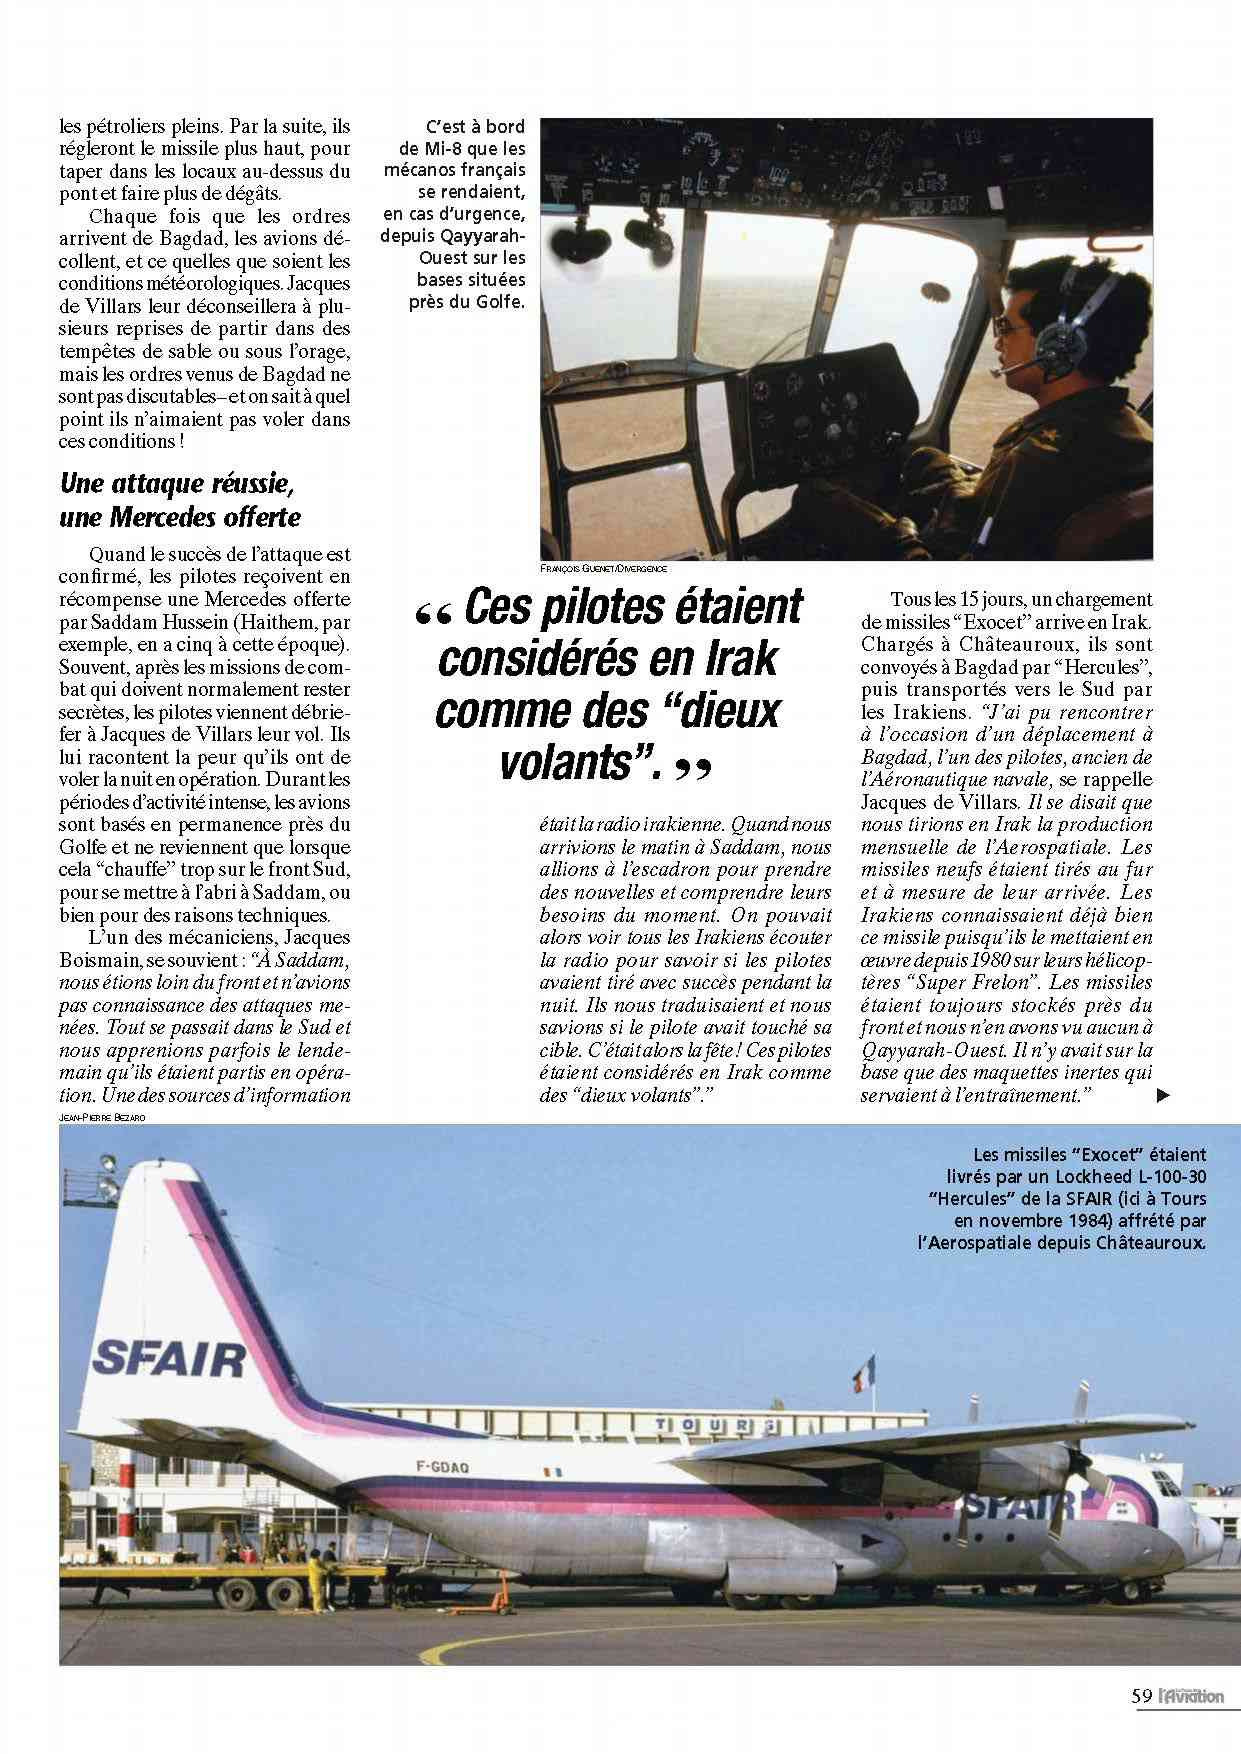 Guerre Iran-Irak - Page 3 S2910